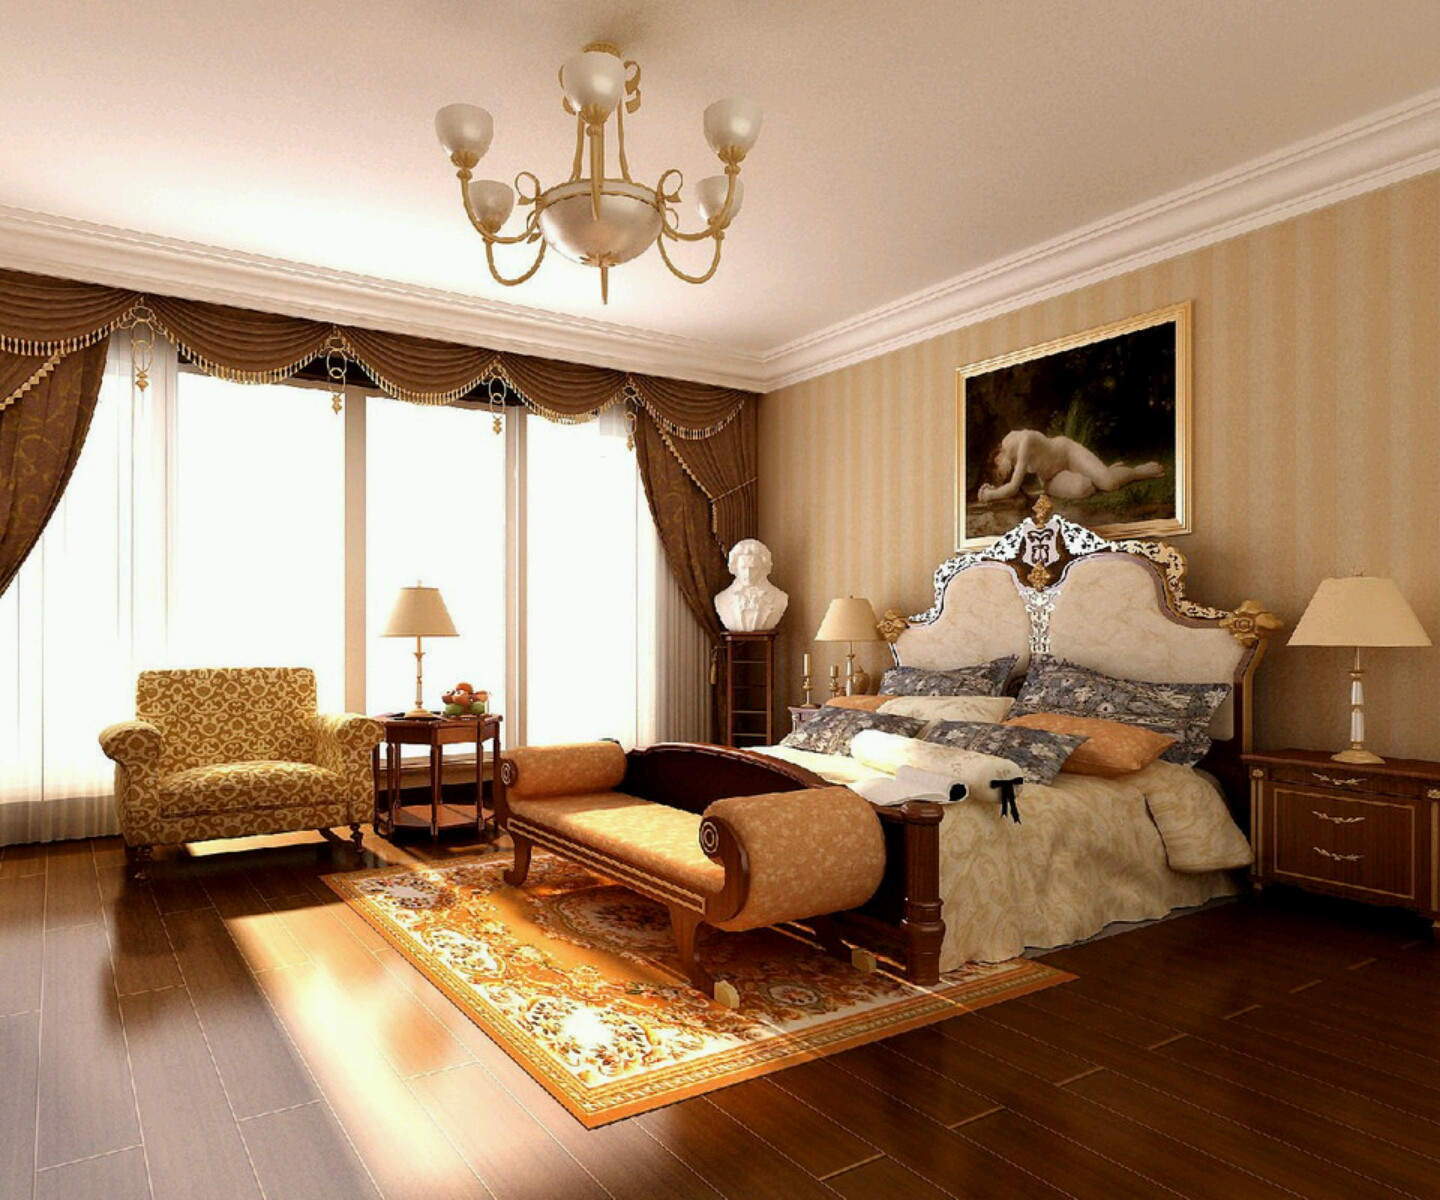 New home designs latest.: Modern homes bedrooms designs ... on Simple Best Bedroom Design  id=16660